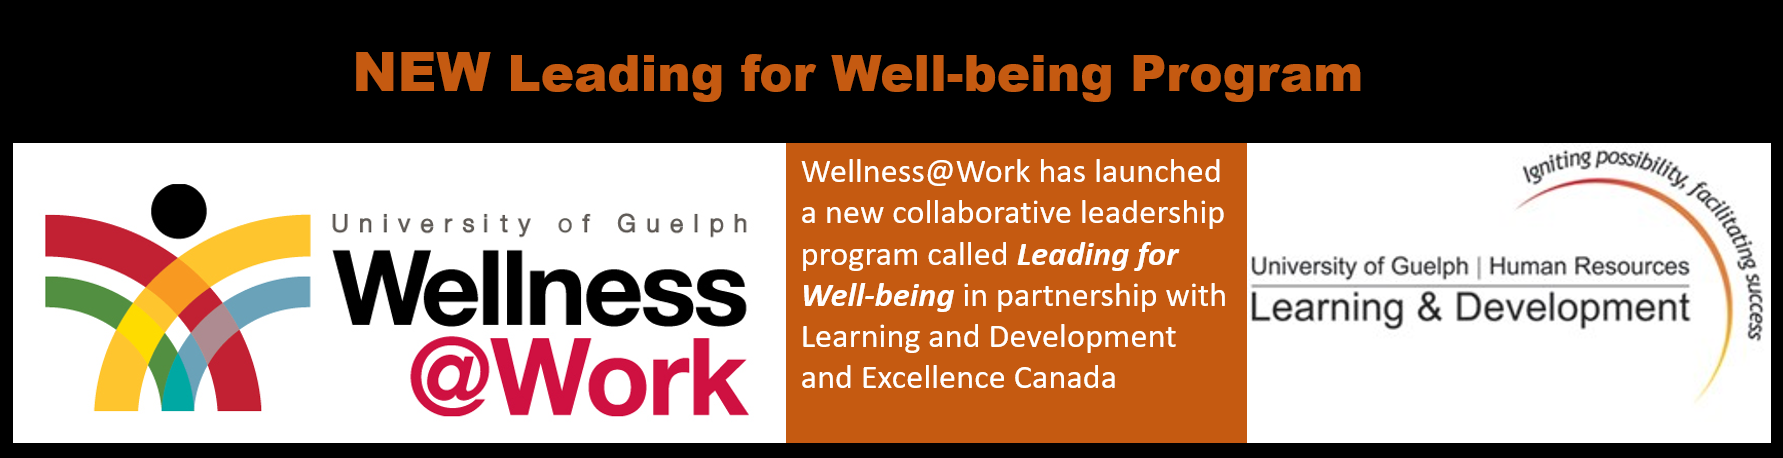 Wellness@Work and Learning and Development Logos